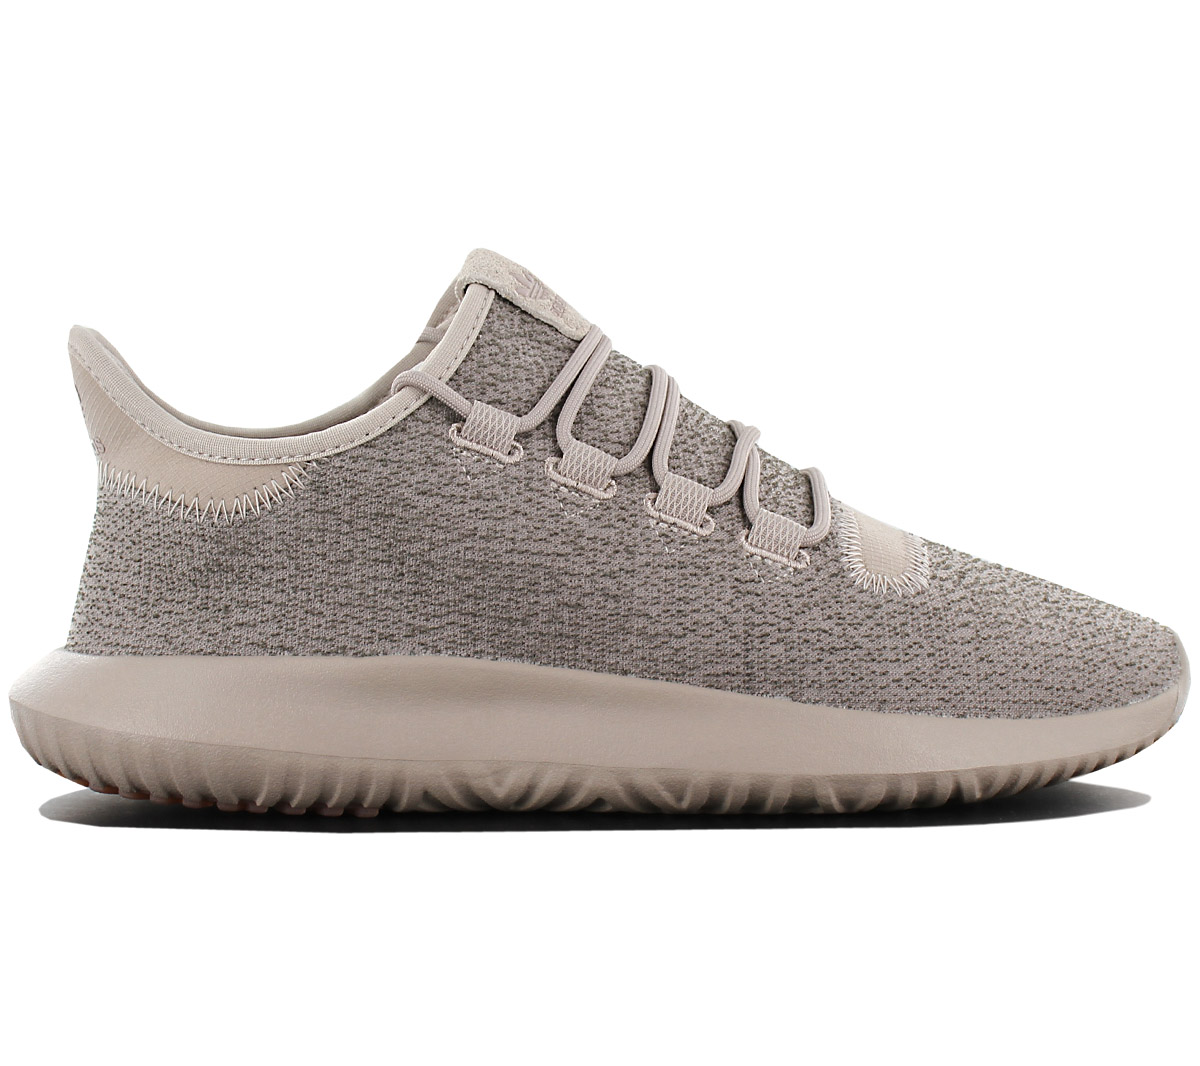 huge discount 4ee45 7ff79 Details about Adidas Originals Tubular Shadow Sneaker Shoe Grey Men s  Women s Trainers By3574